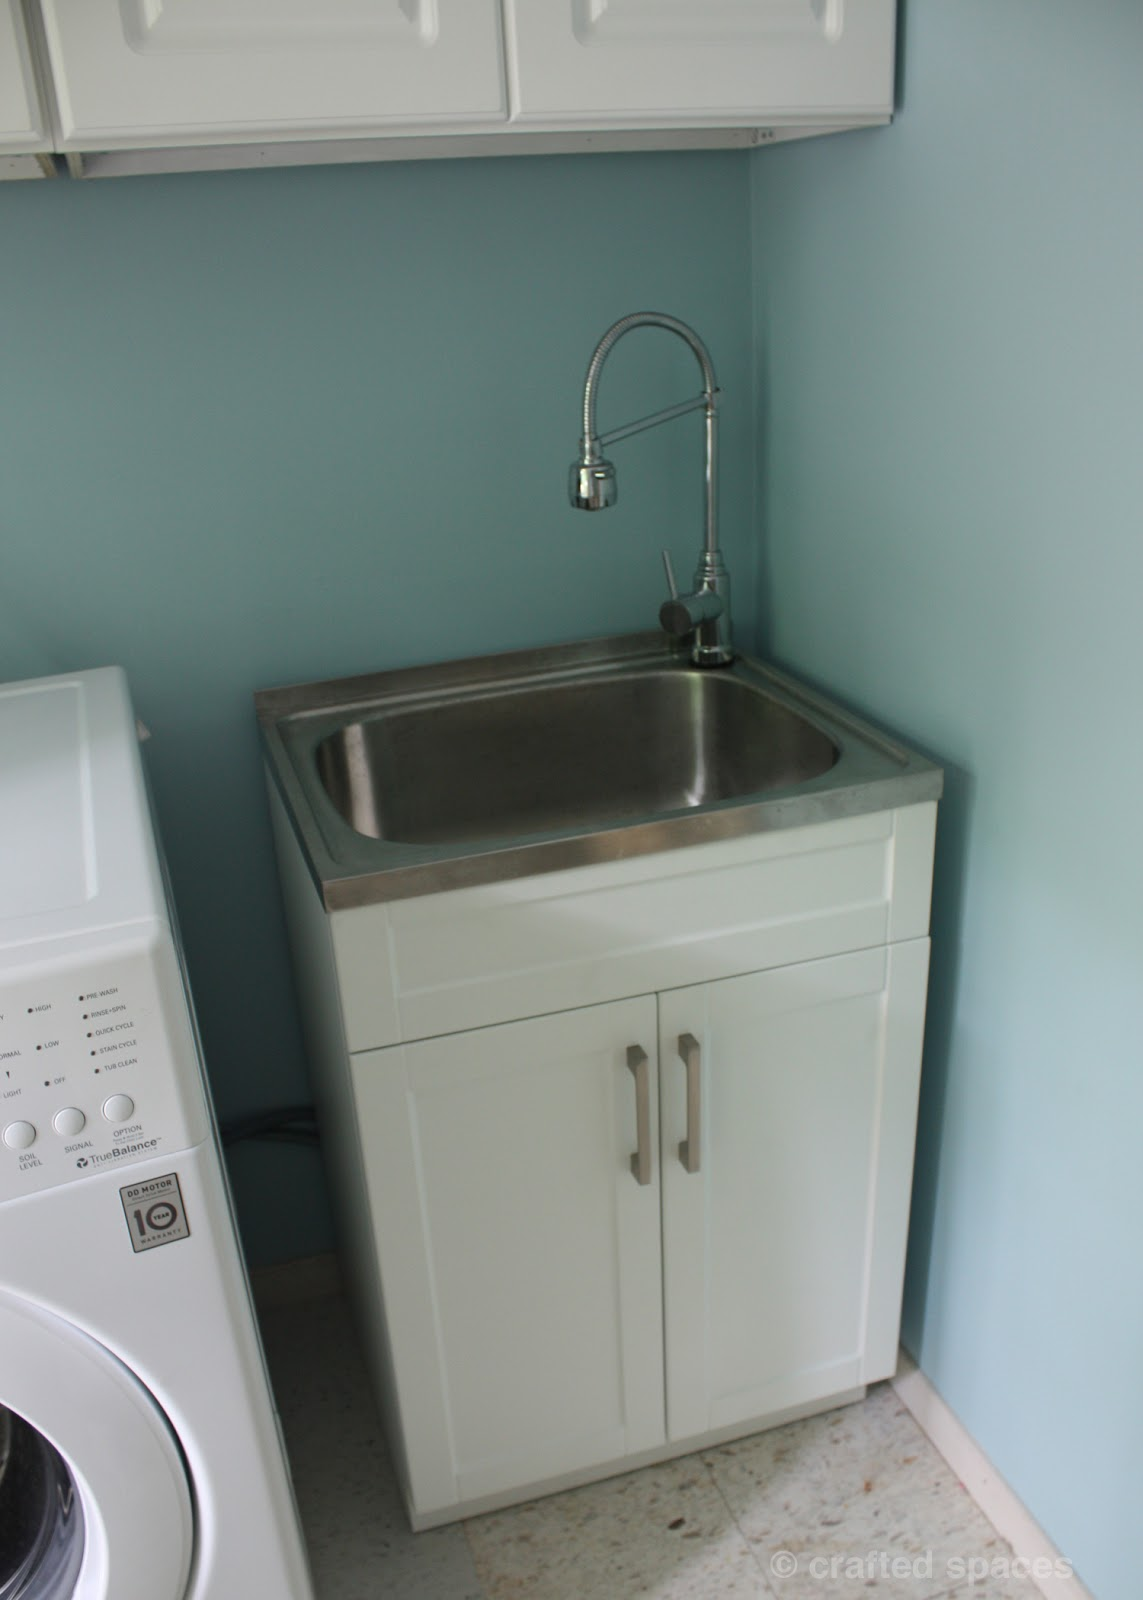 Laundry Cabinet And Sink : We were really happy to get this wonderful sink. It is deep enough to ...